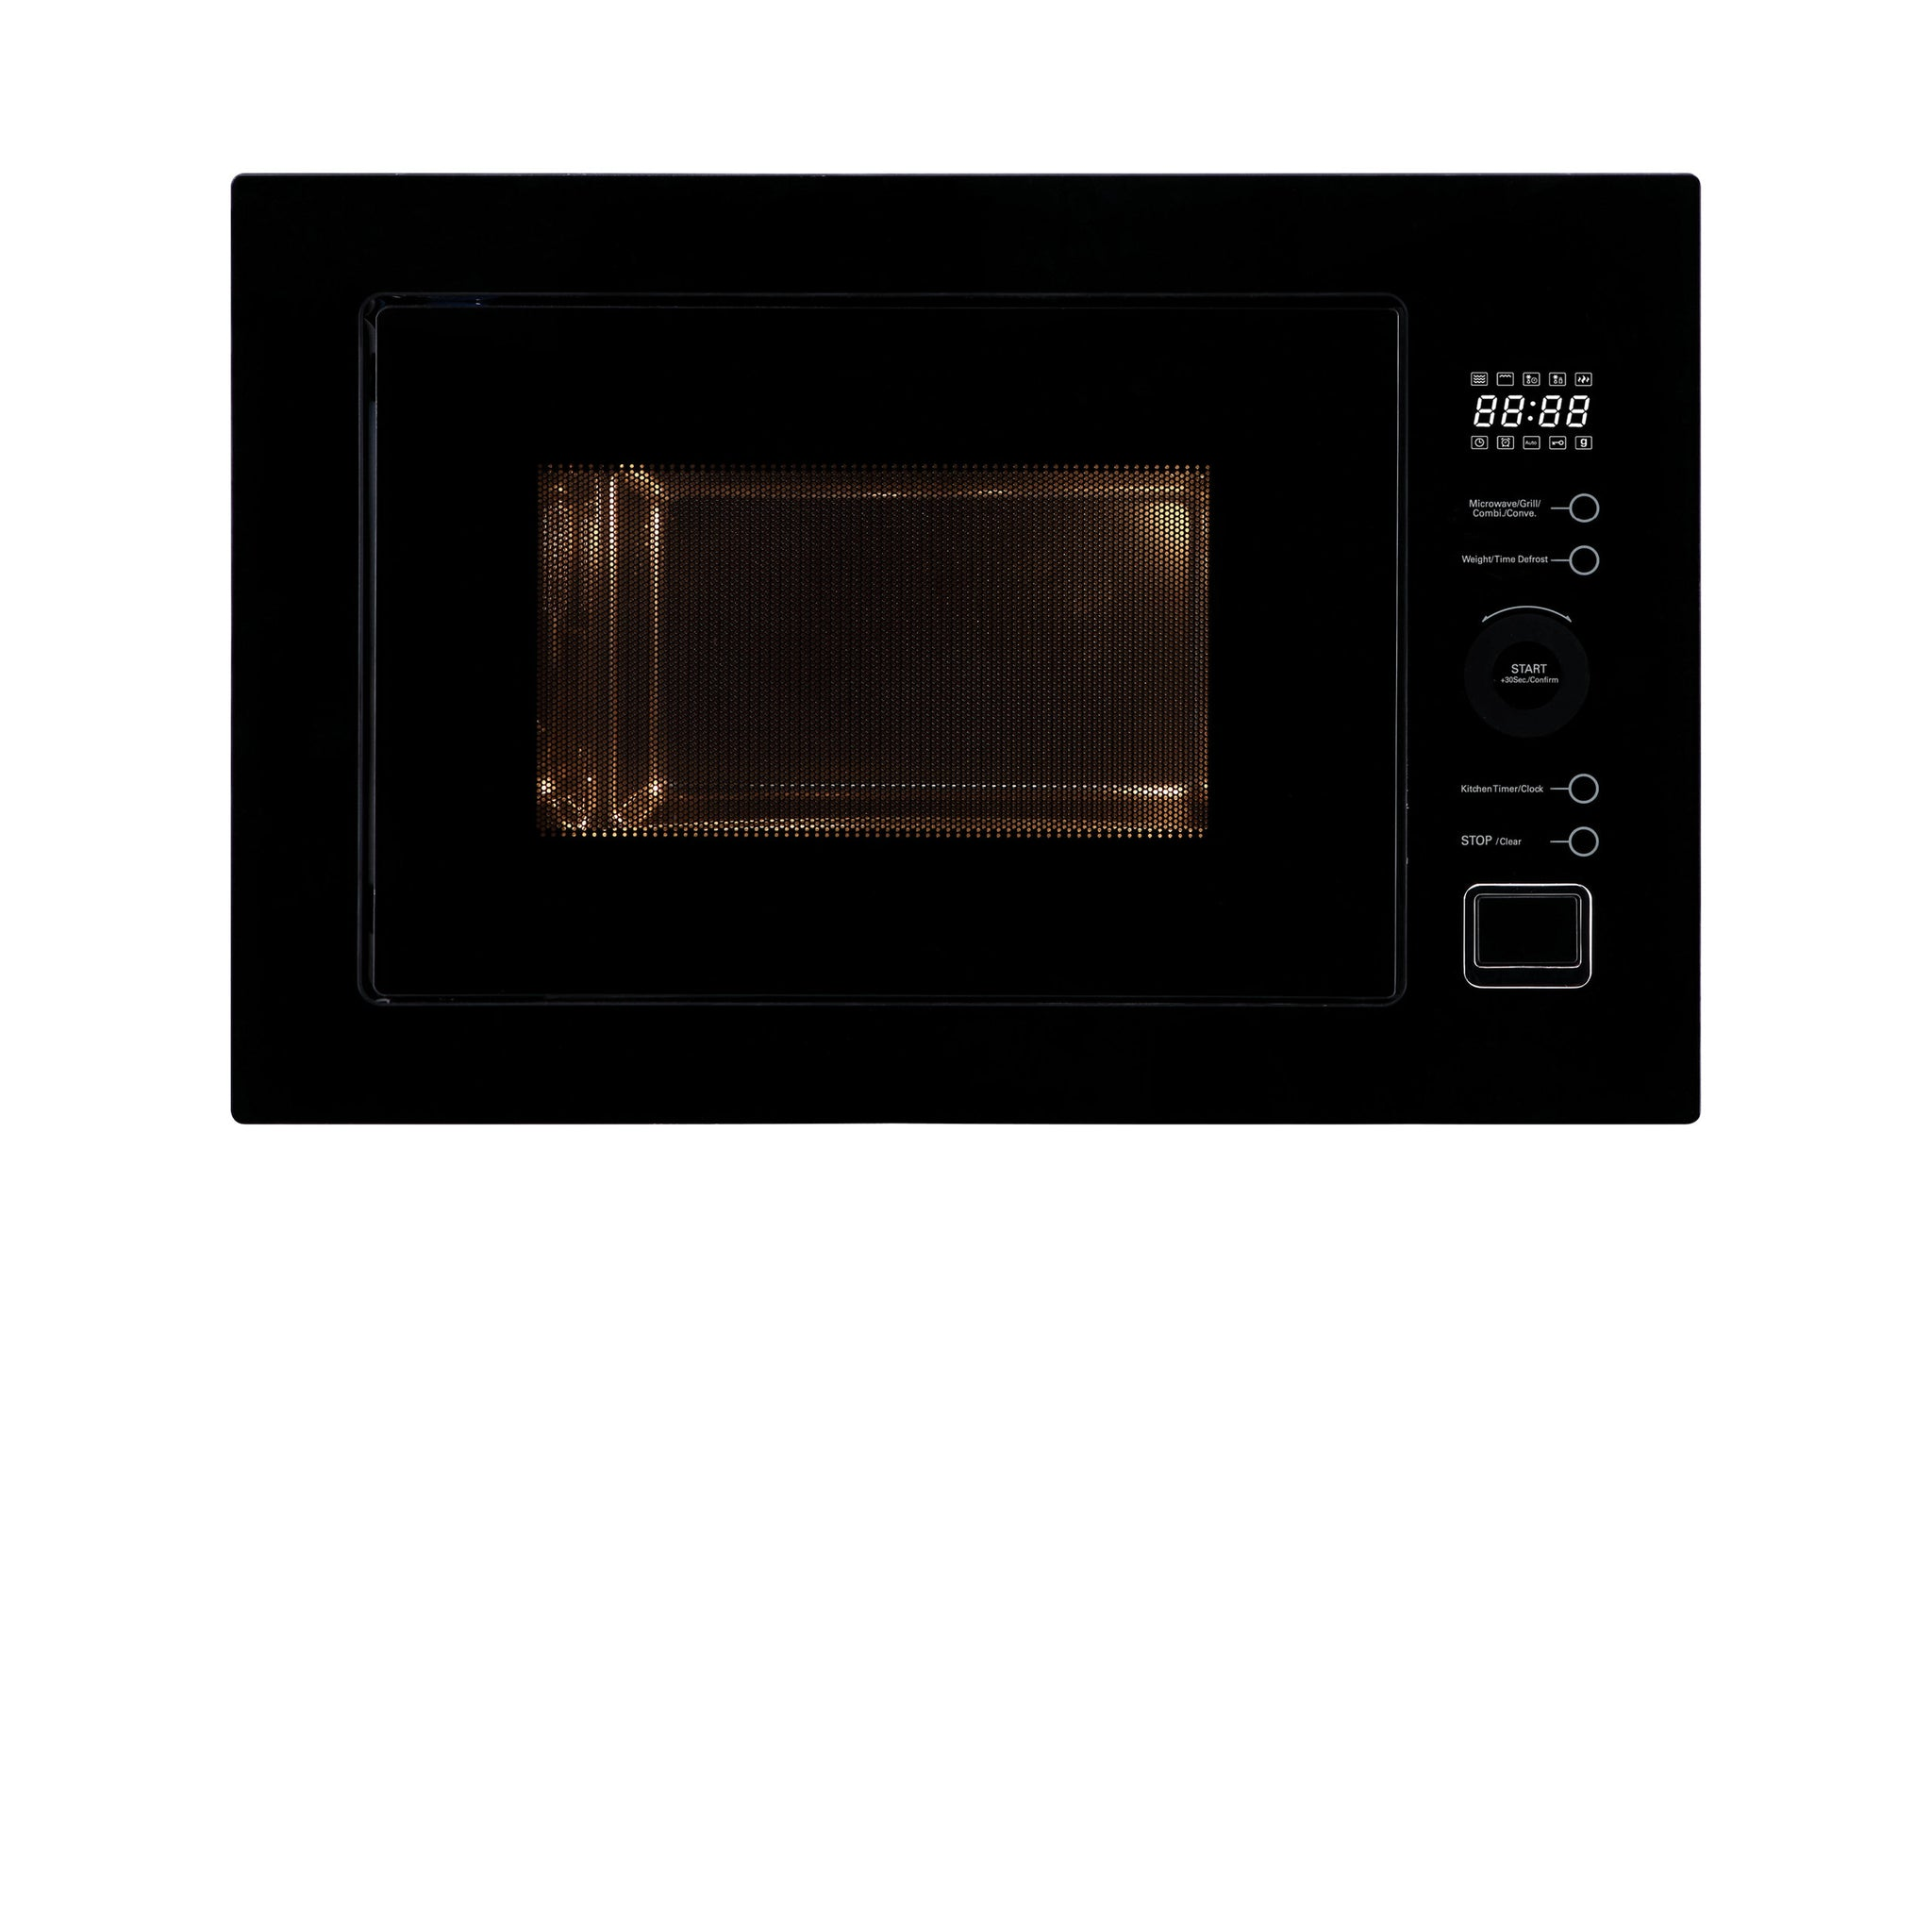 Inalto MC25BF 25L Convection Built-in Microwave Oven